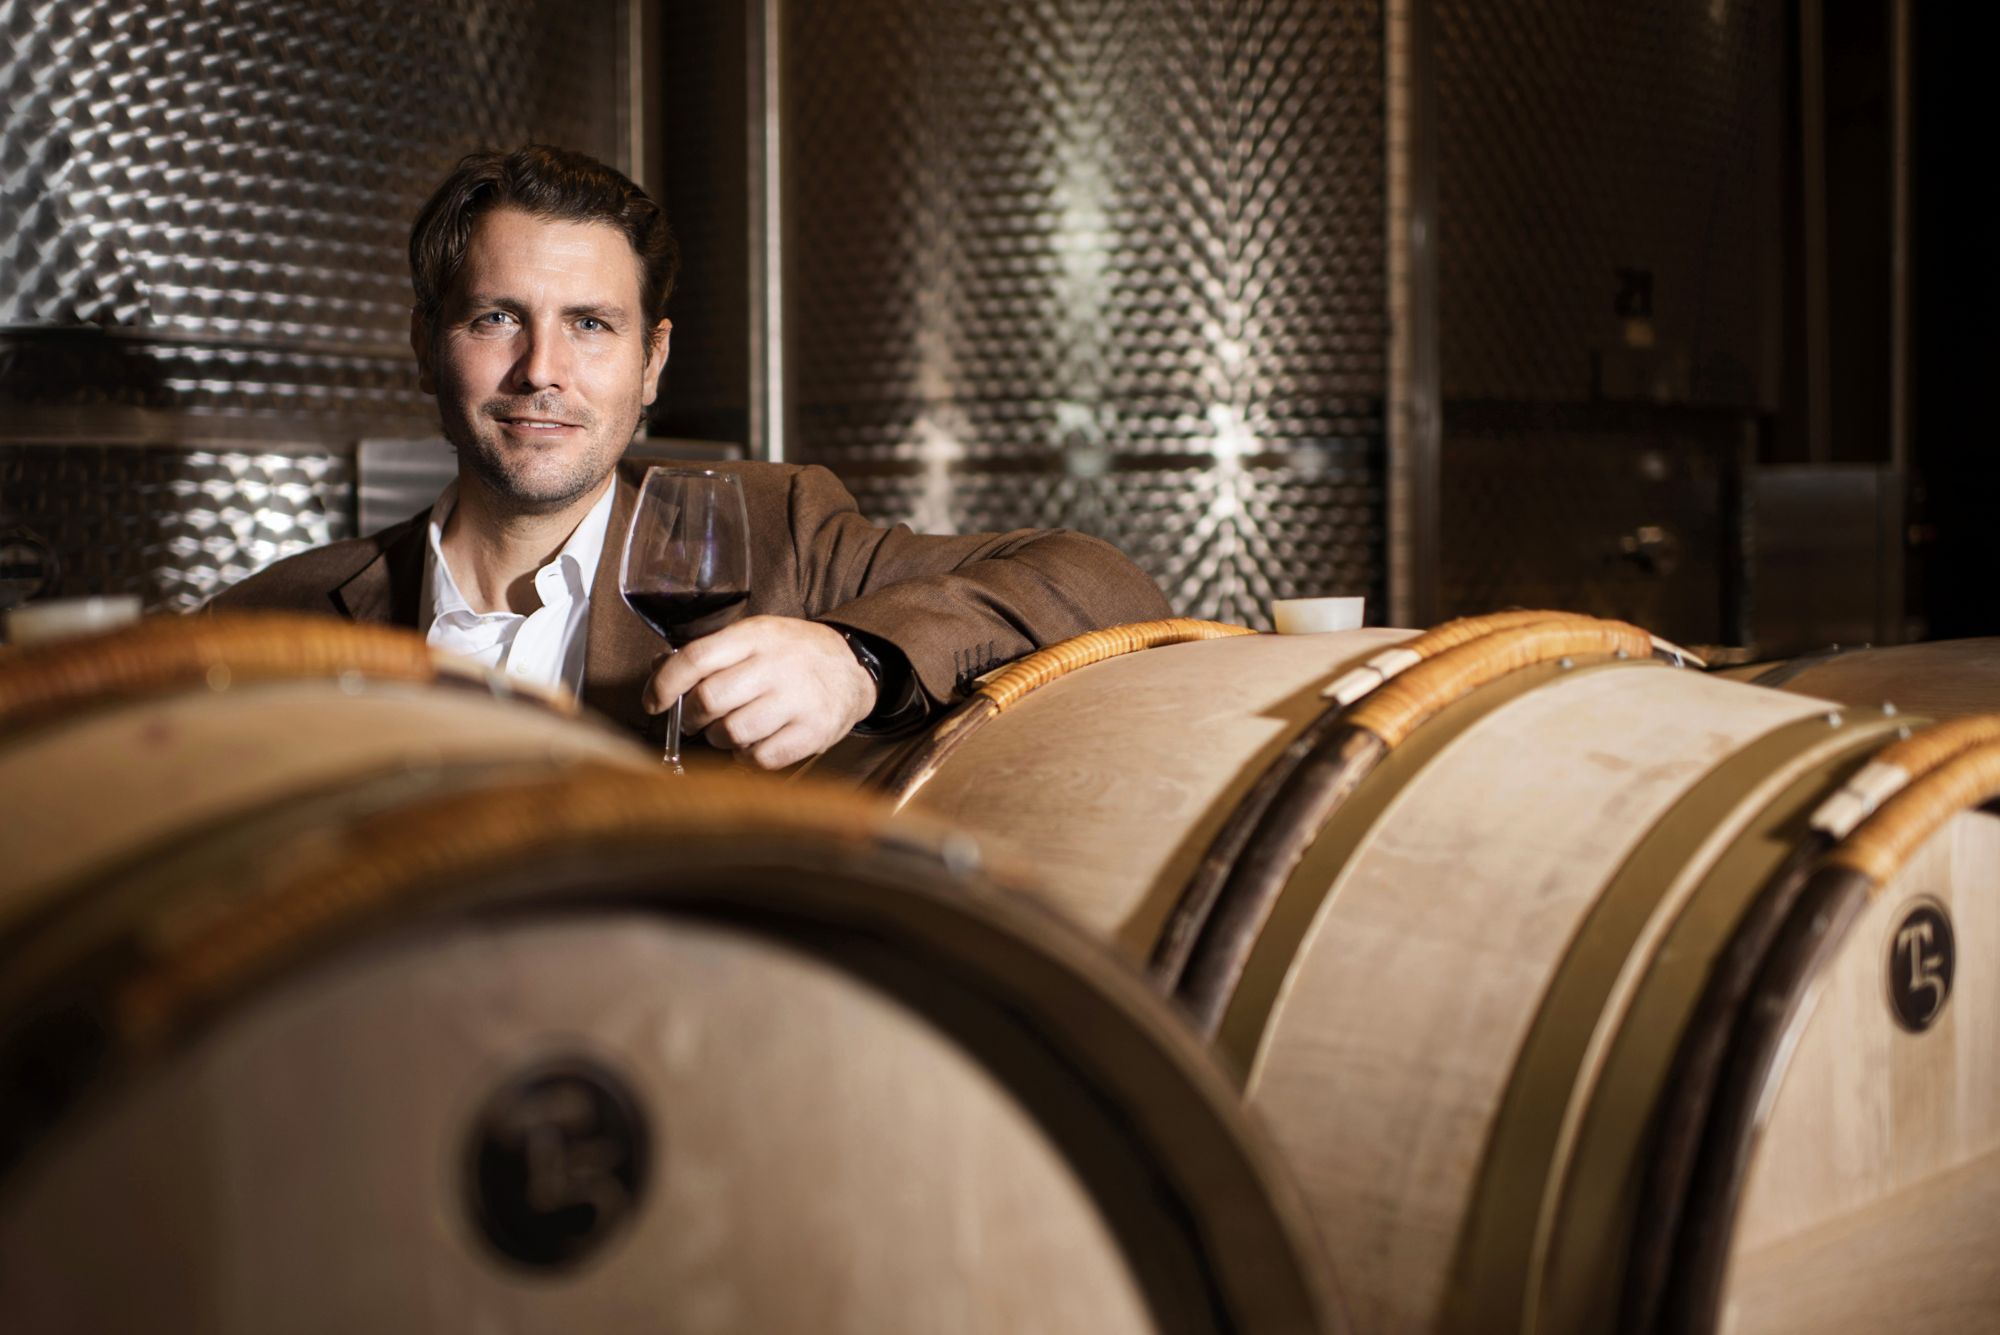 Salvatore Ferragamo, CEO of Il Borro, posing in between handmade wine barrels.